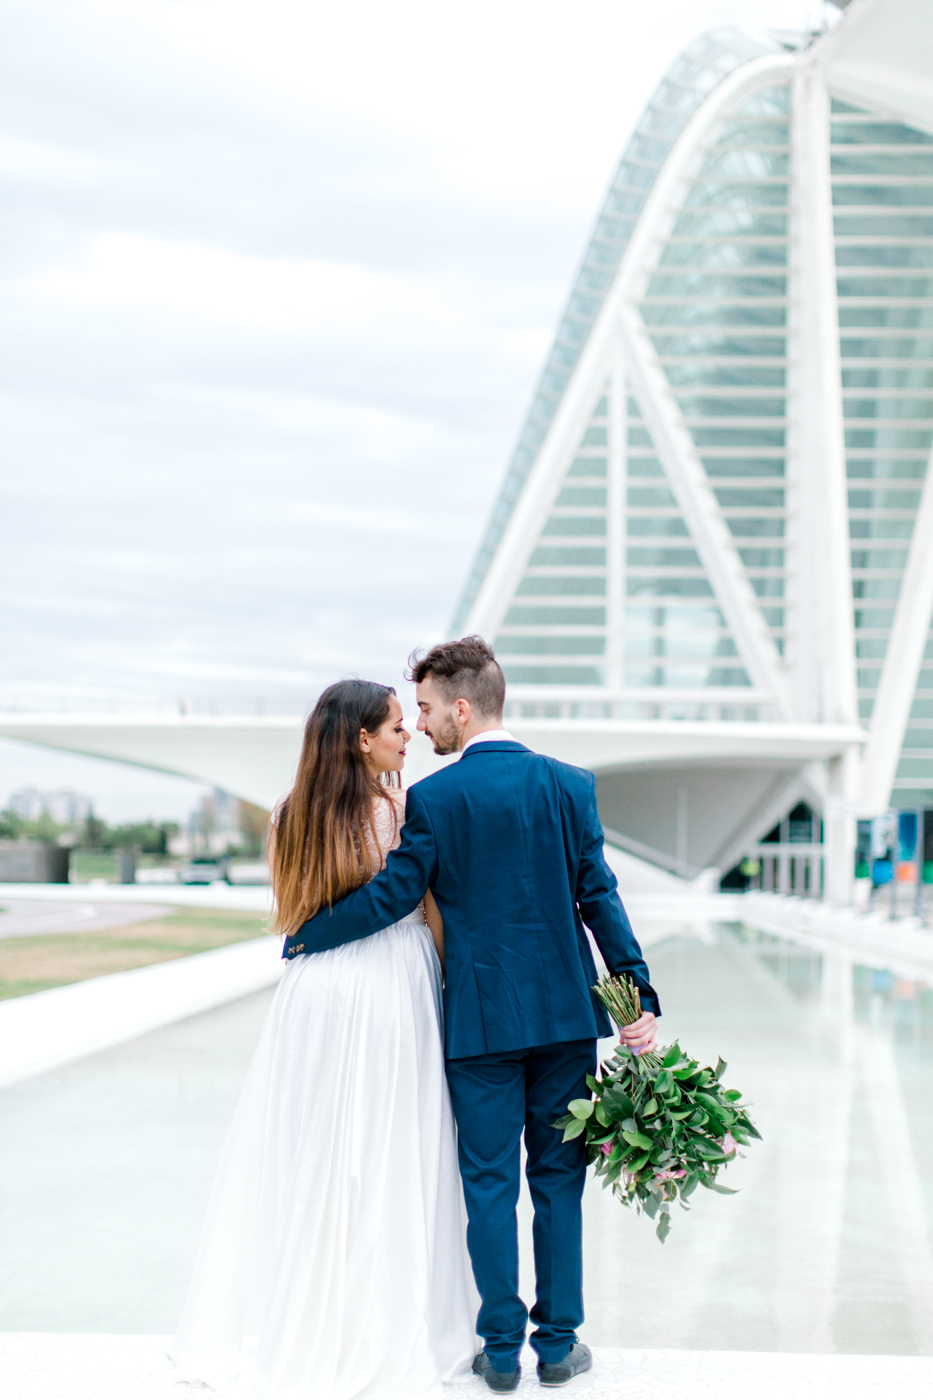 four corners photography valencia wedding photographer rad wedding photographer best spain wedding photographer wedding in spain  (10 of 39).jpg